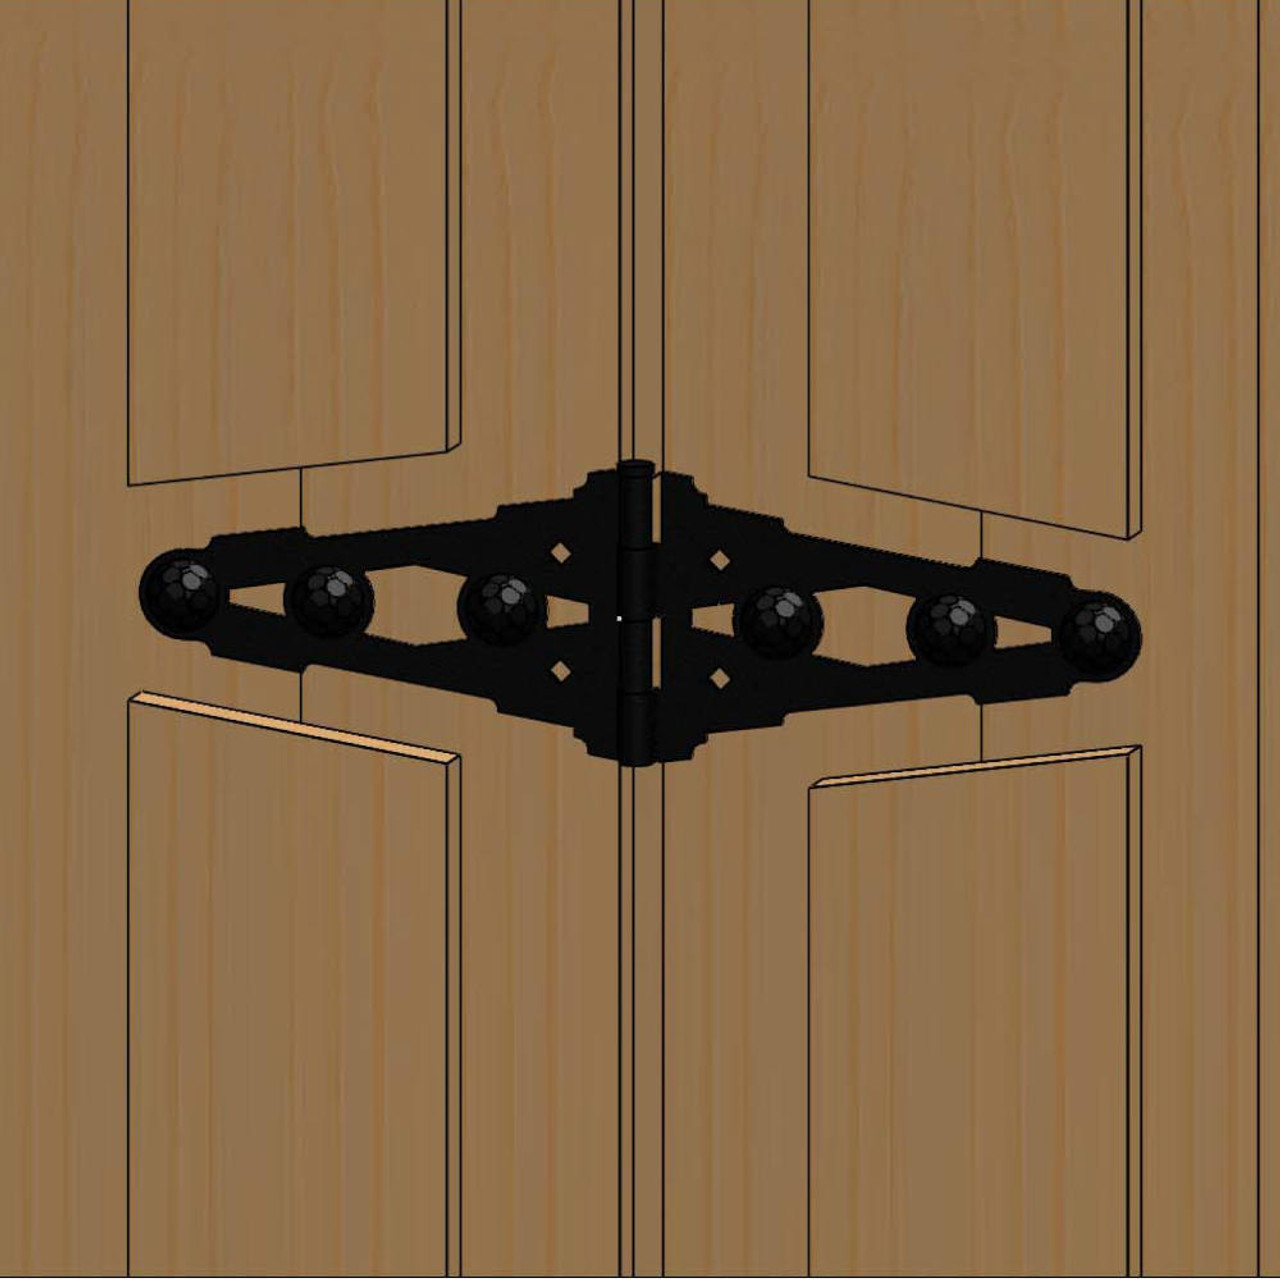 Typical Installation for OZCO OWT Hardware Strap Hinge